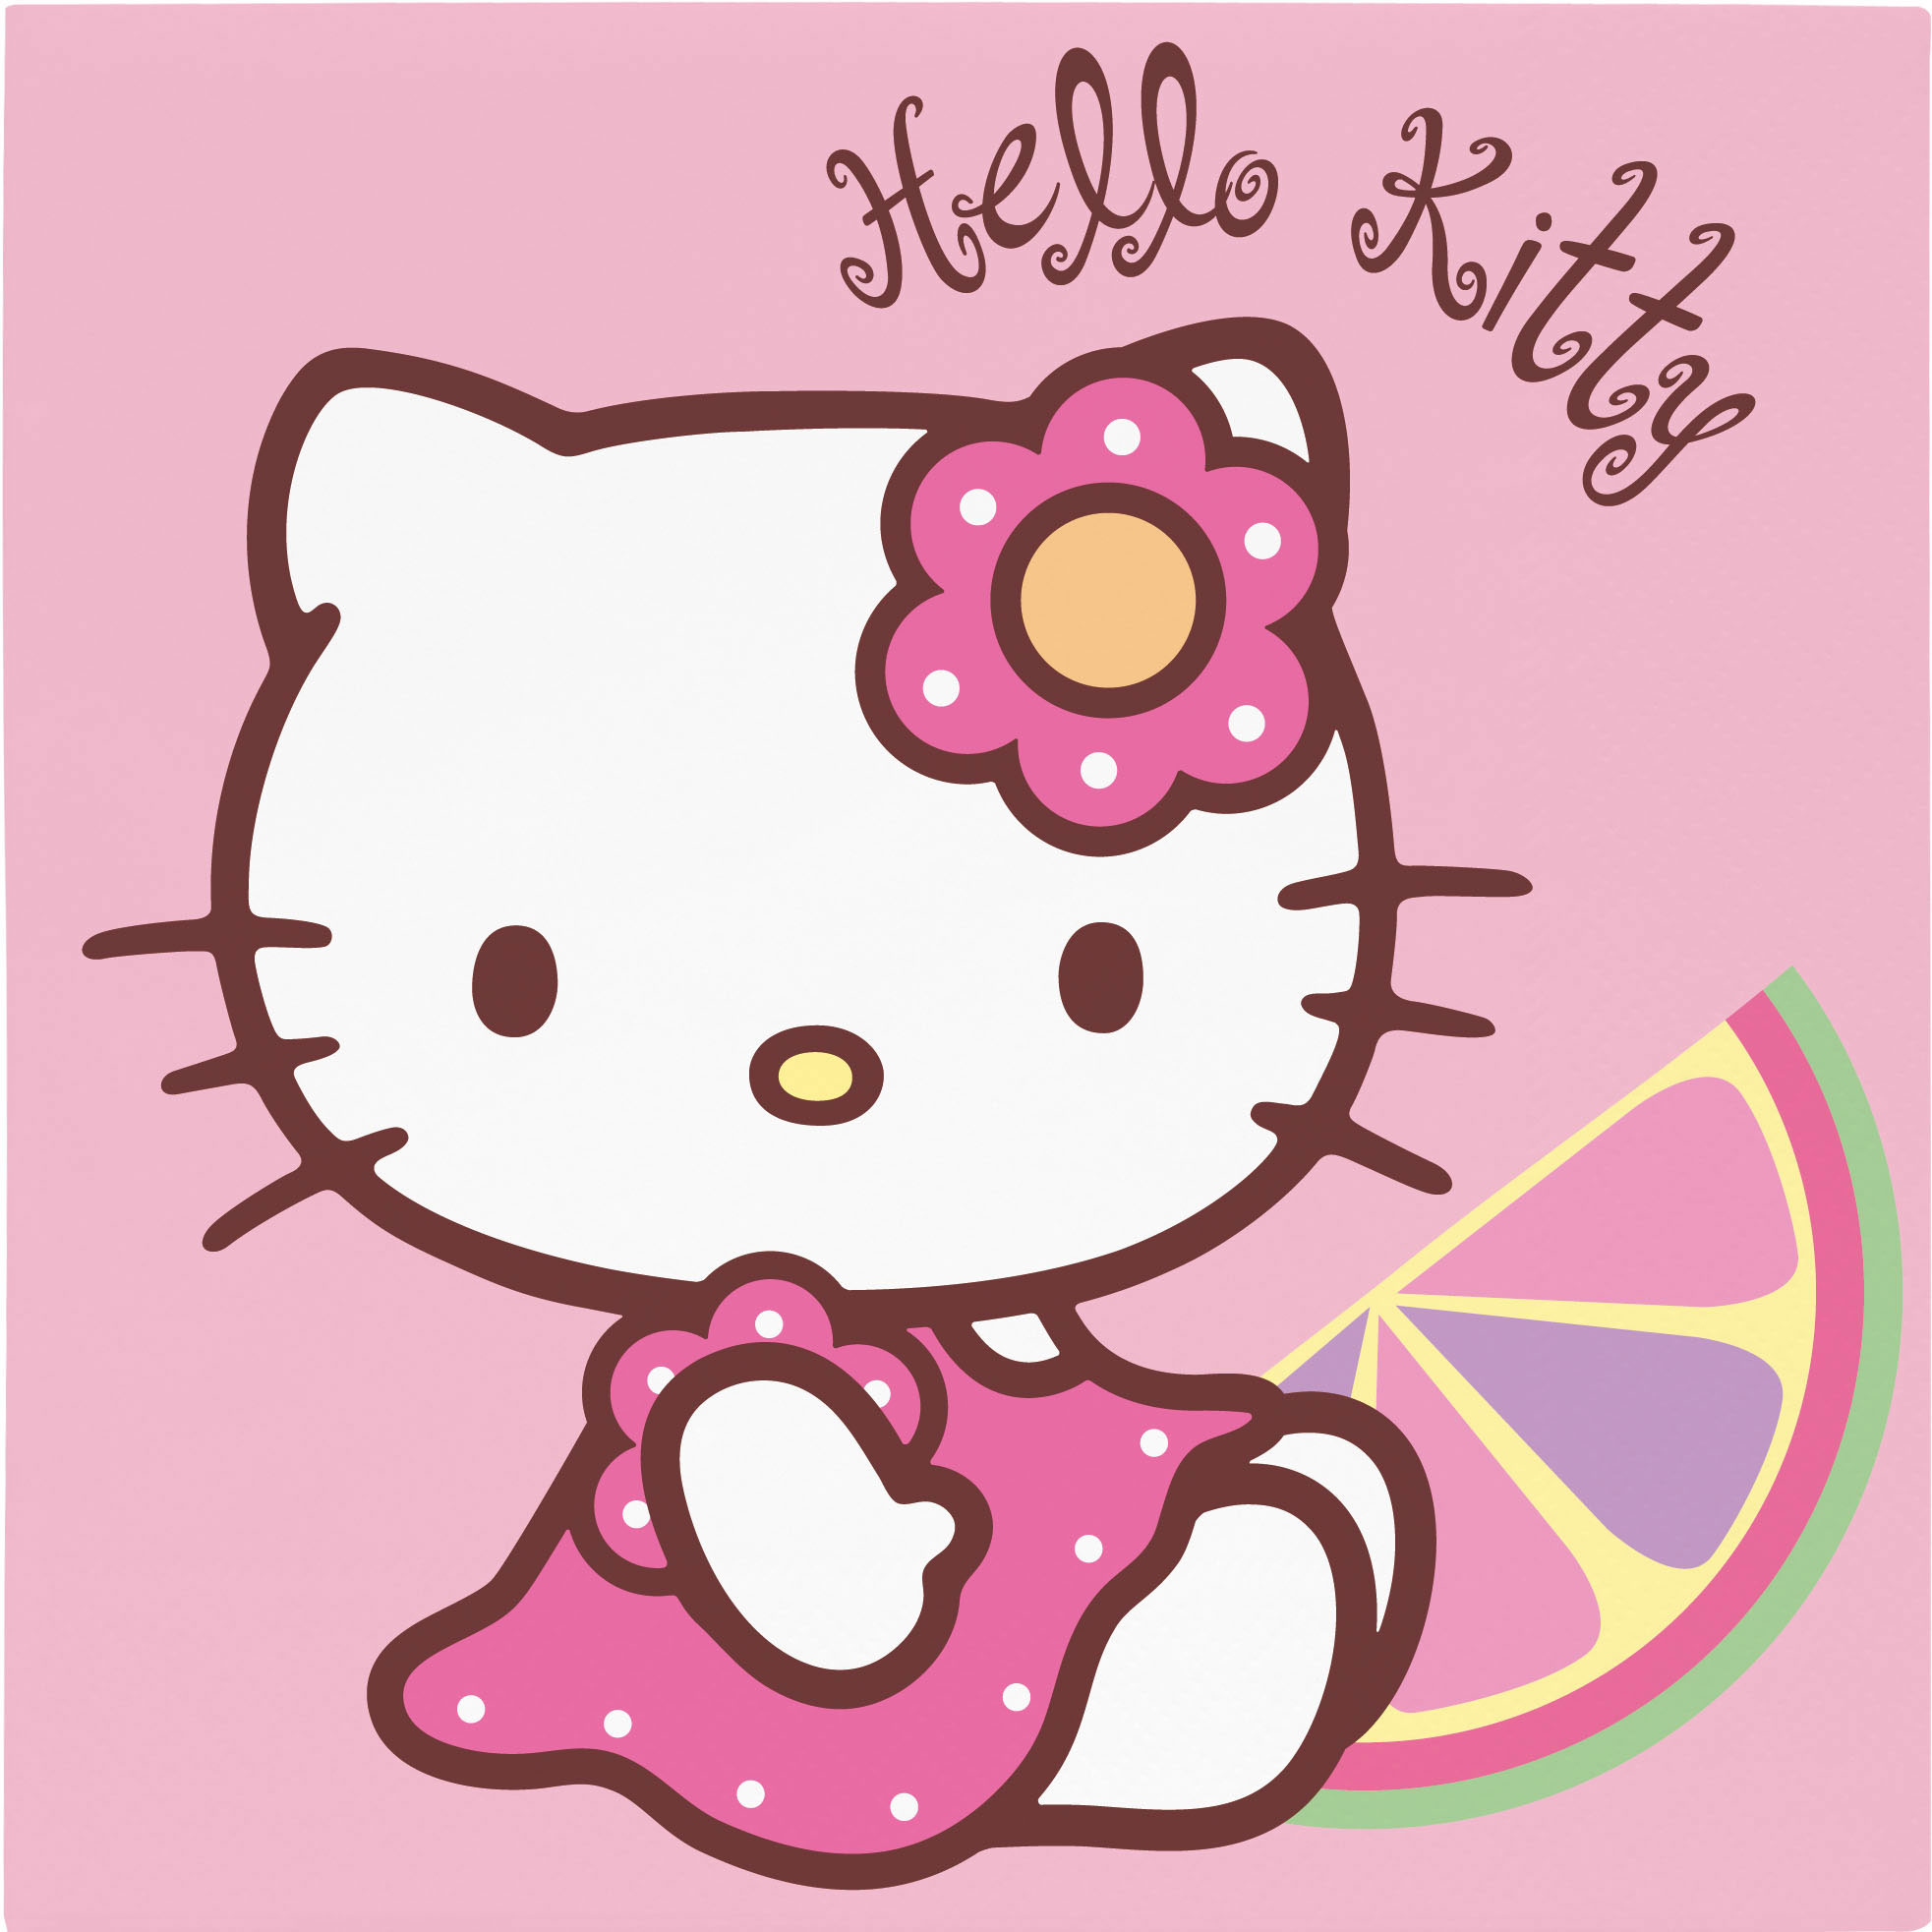 Hello Kitty Bamboo Hello Kitty Images Hd 1965x1965 Download Hd Wallpaper Wallpapertip